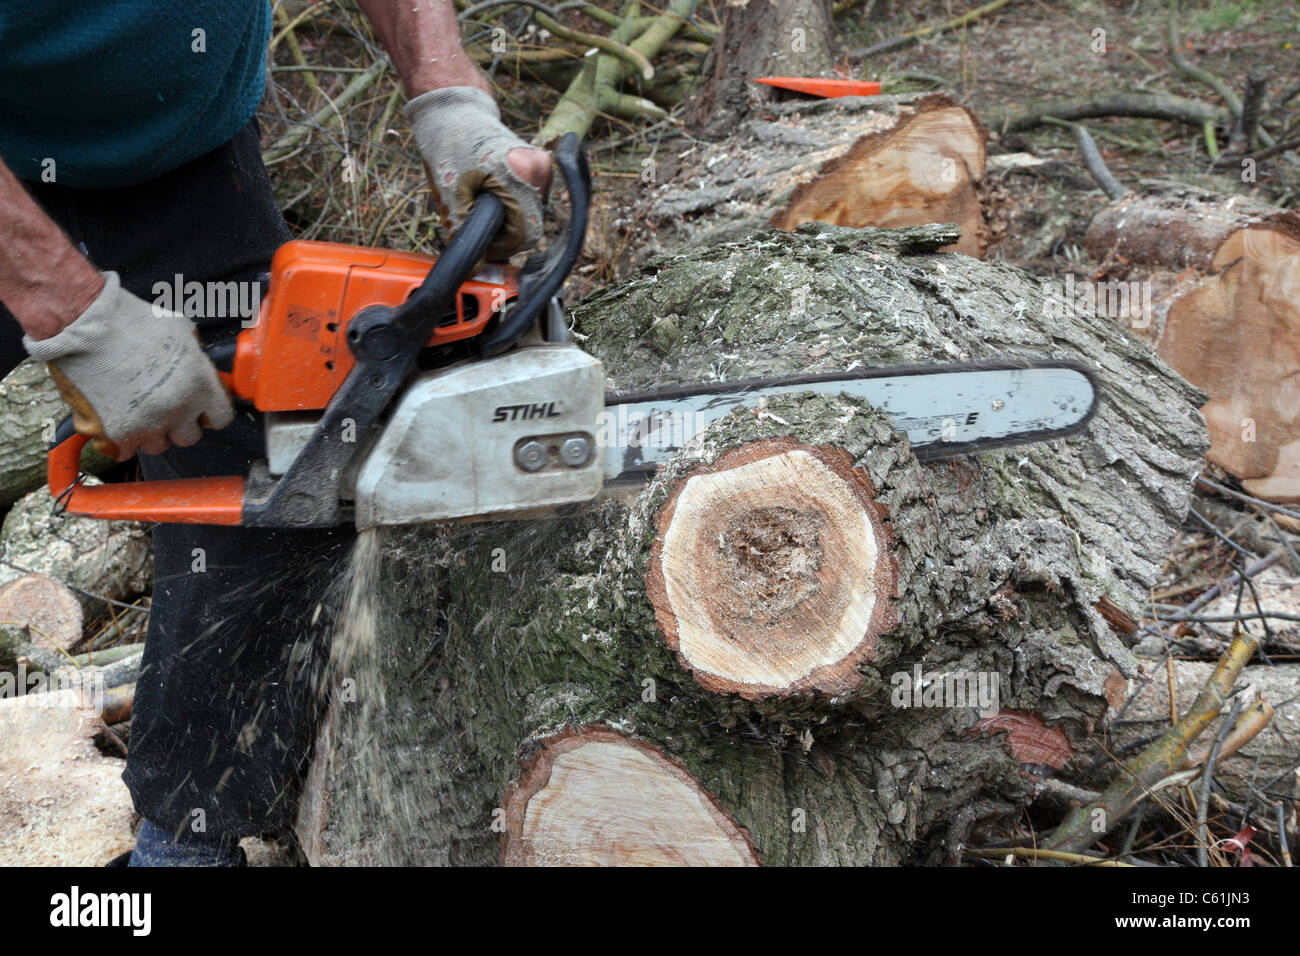 Male hands using a chainsaw cutting to a newly fallen tree Stock Photo